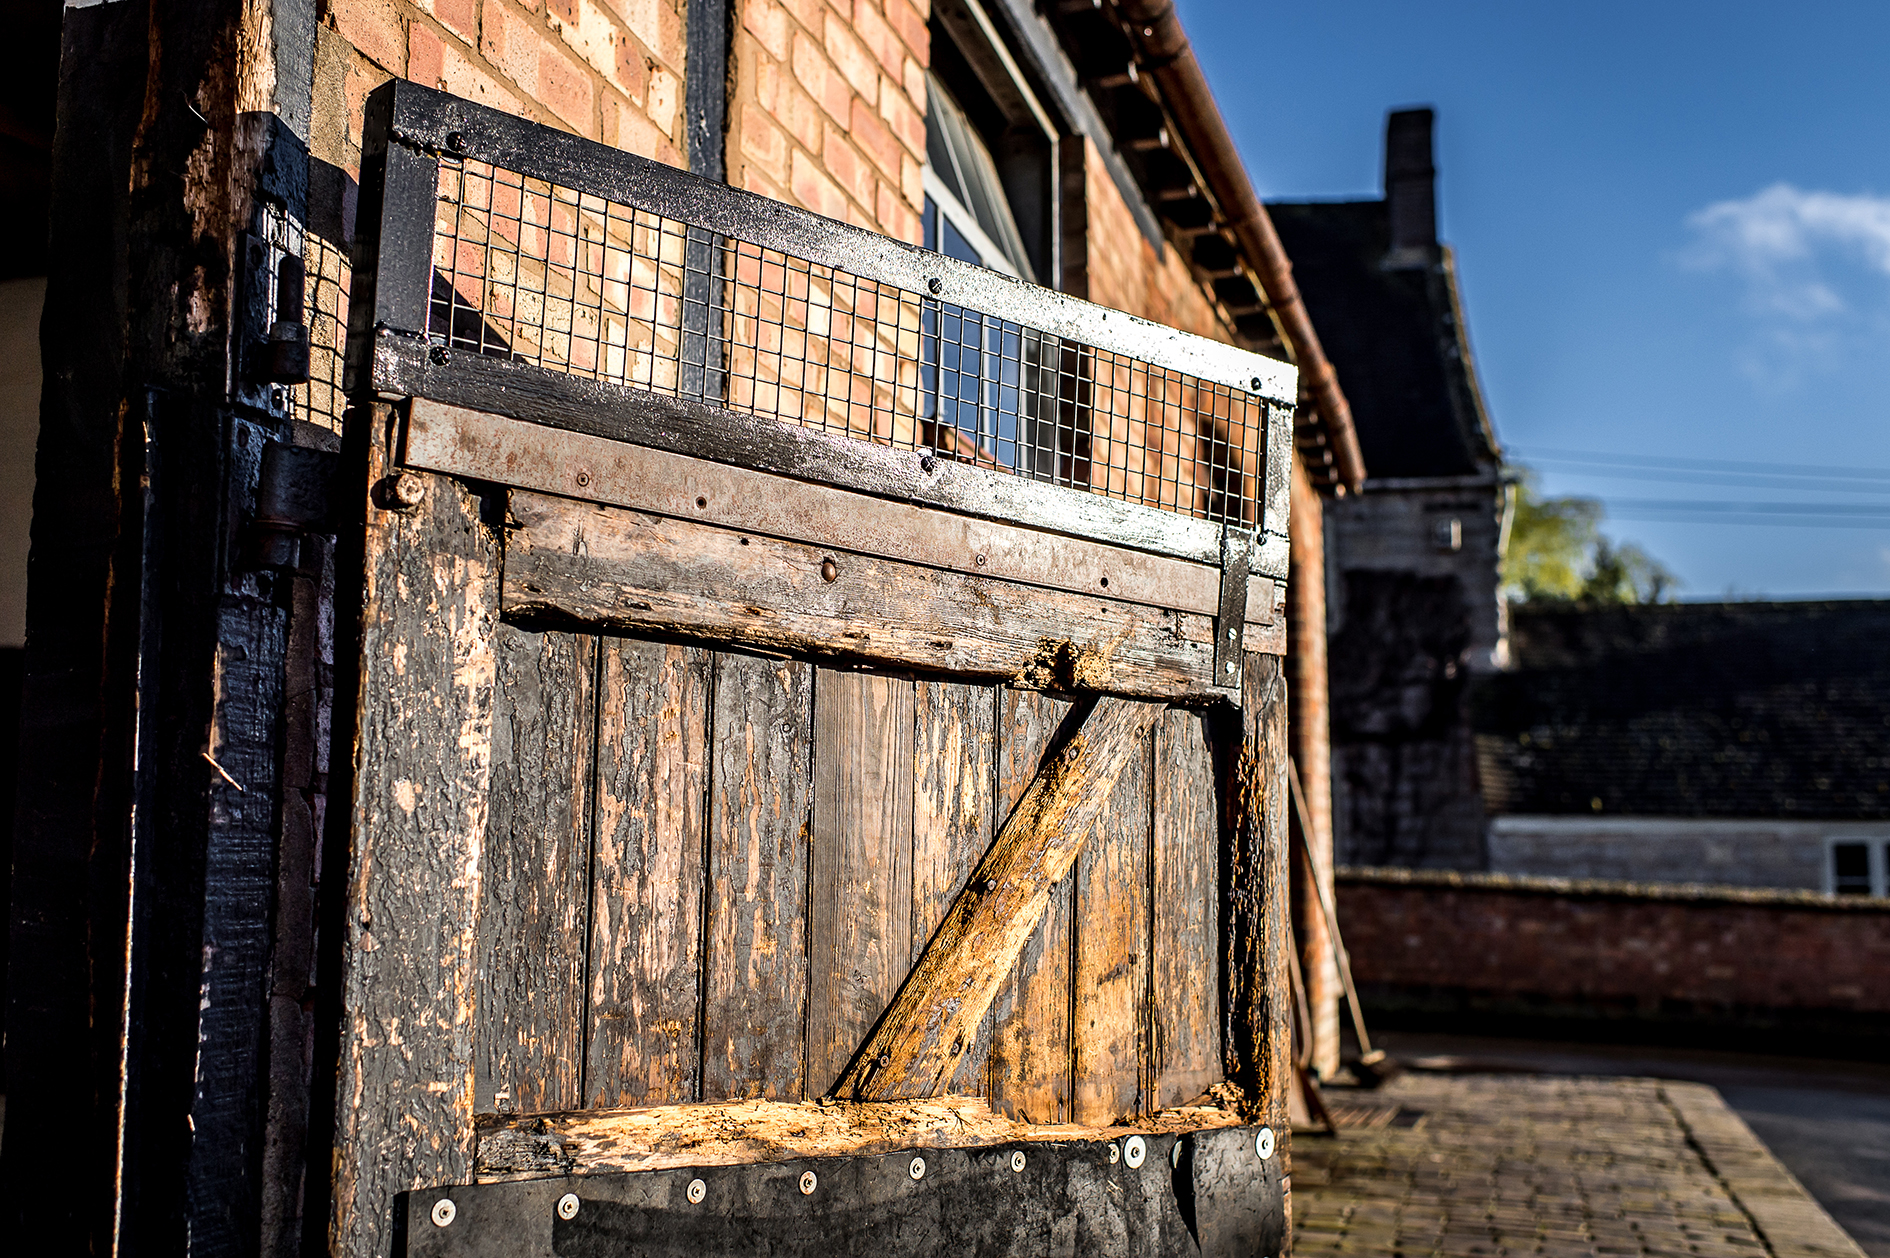 Could your horse's stable do with some TLC?